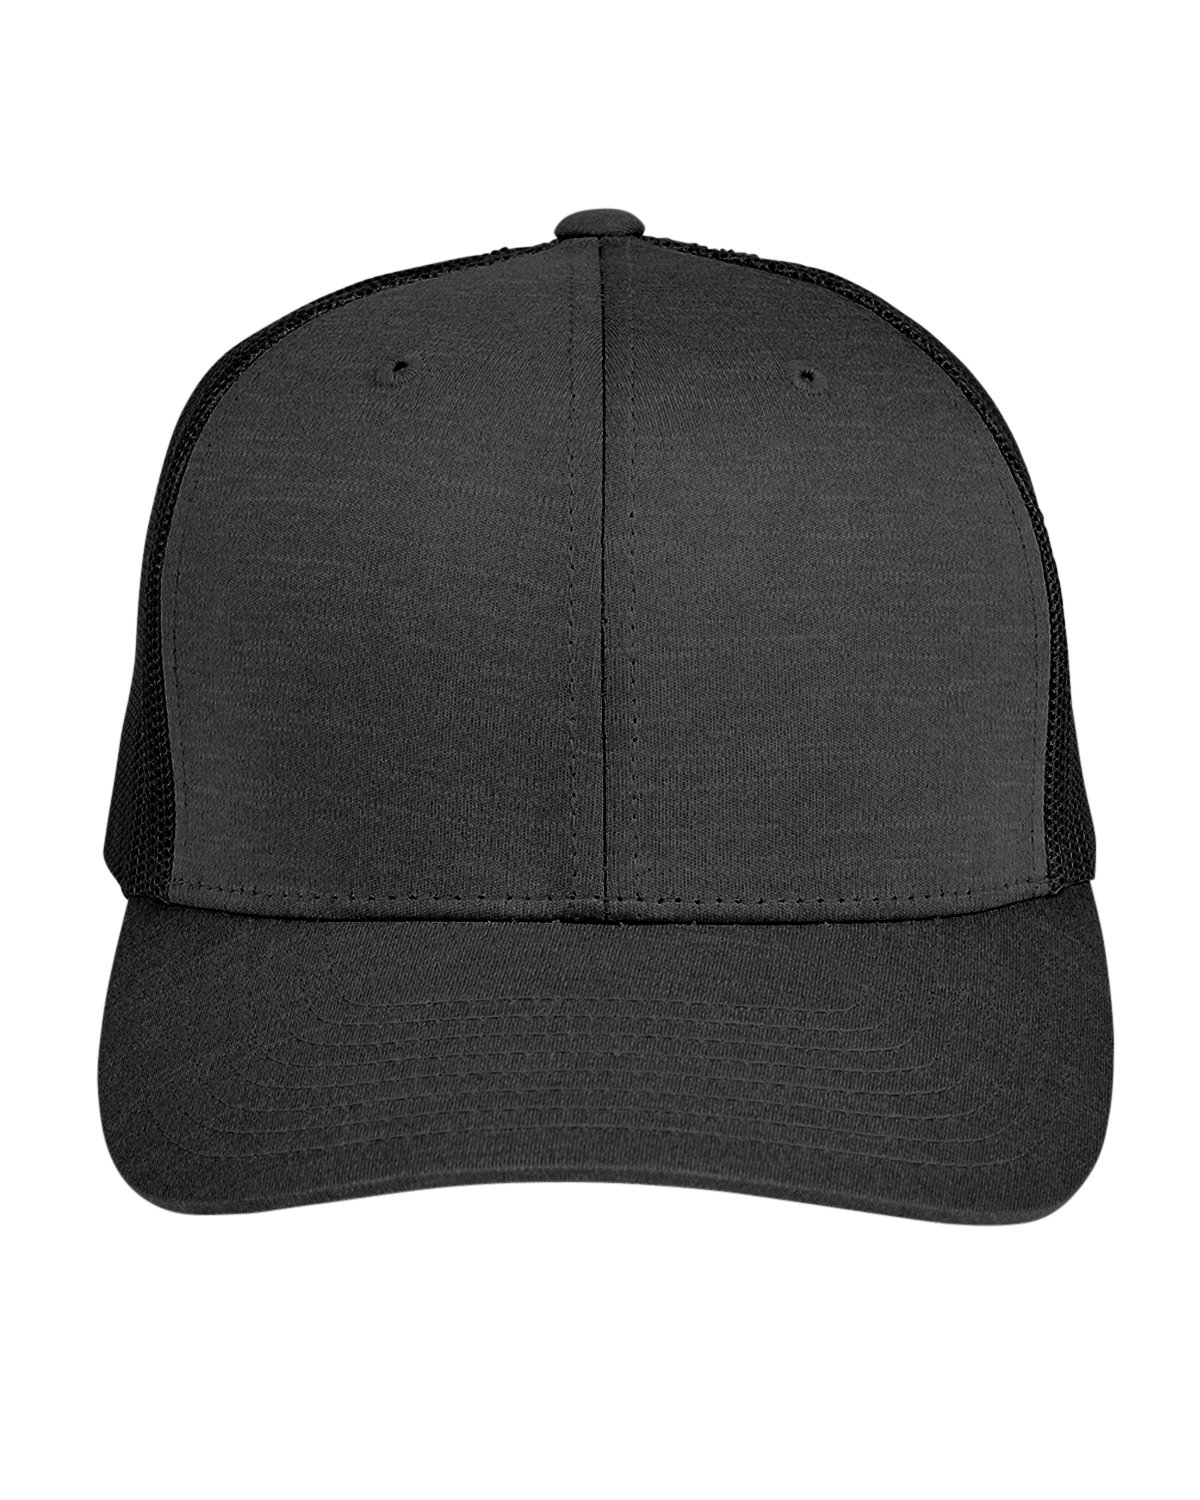 Team 365 by Yupoong® Adult Zone Sonic Heather Trucker Cap BLK HTHR/ BLACK